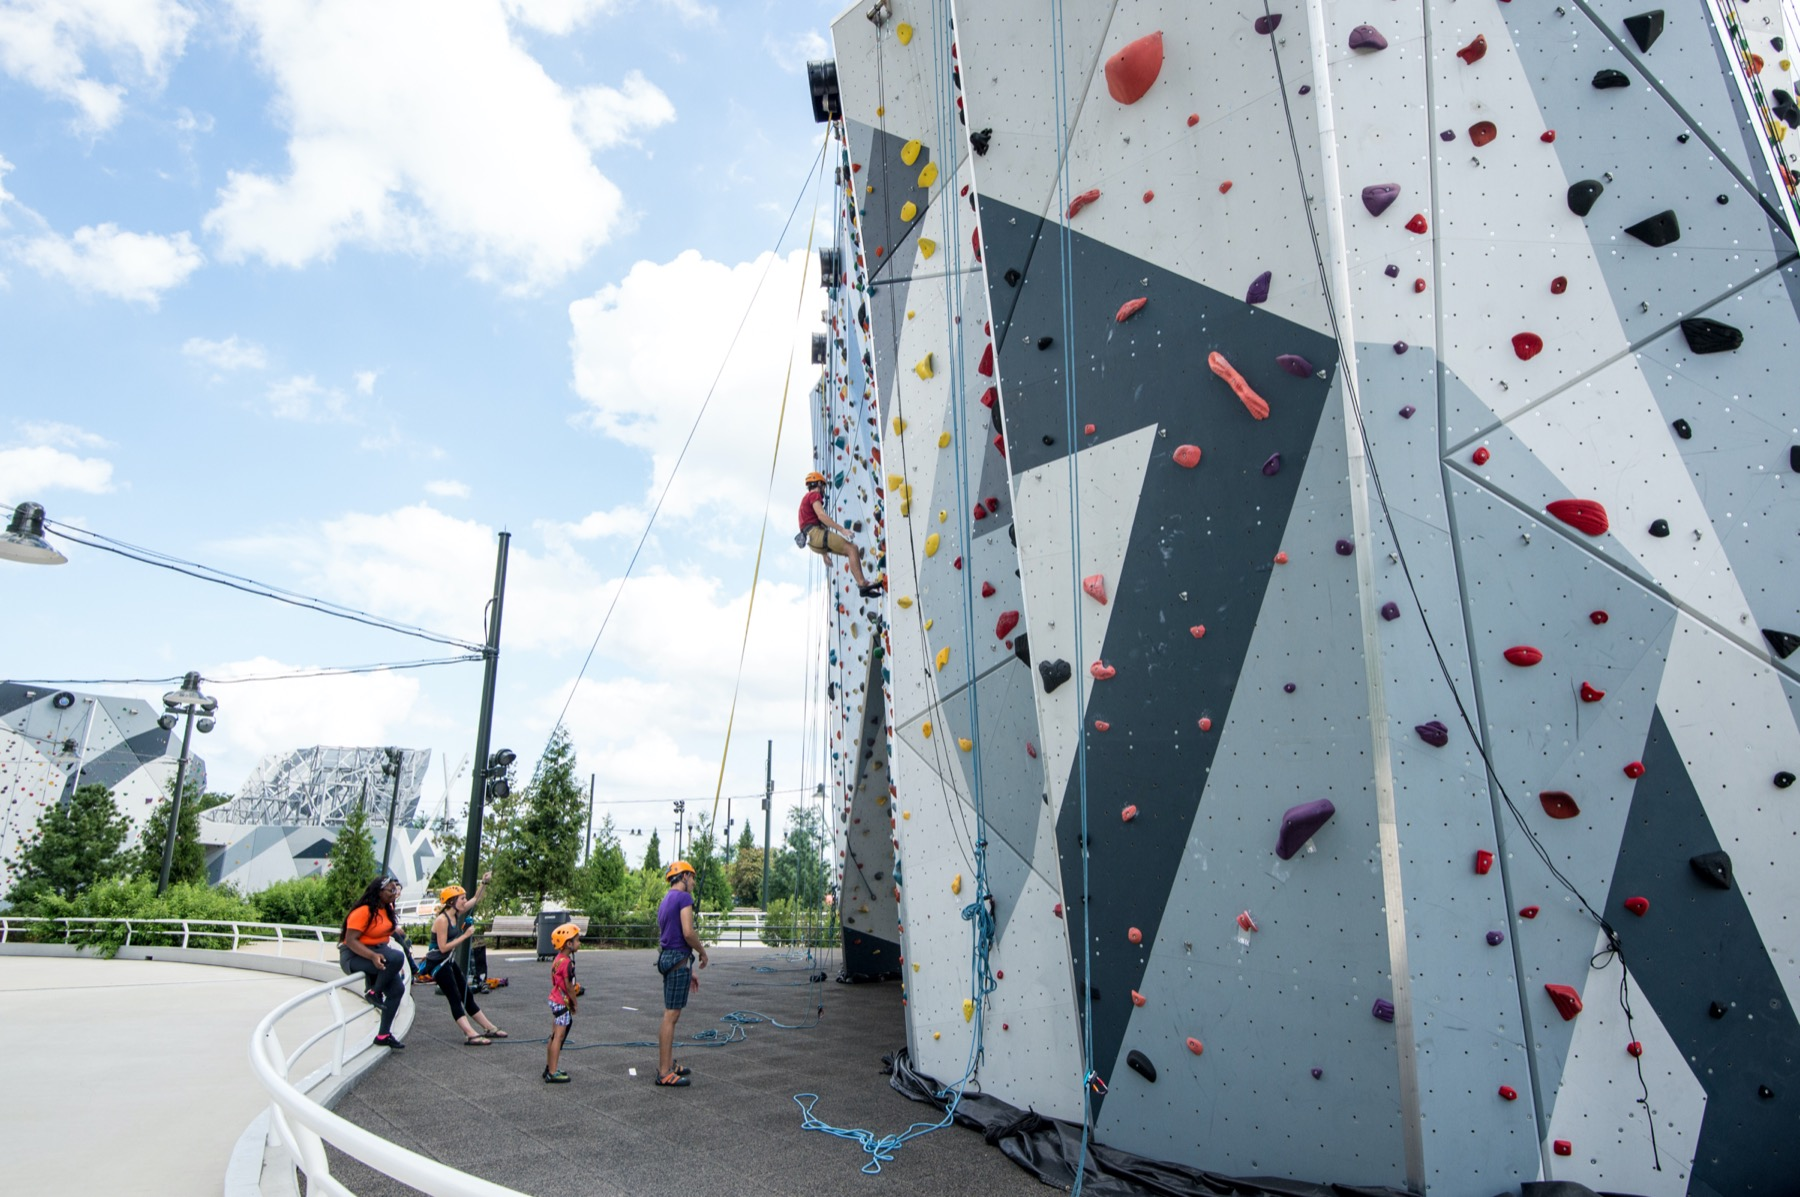 Rock wall at Maggie Daley Park